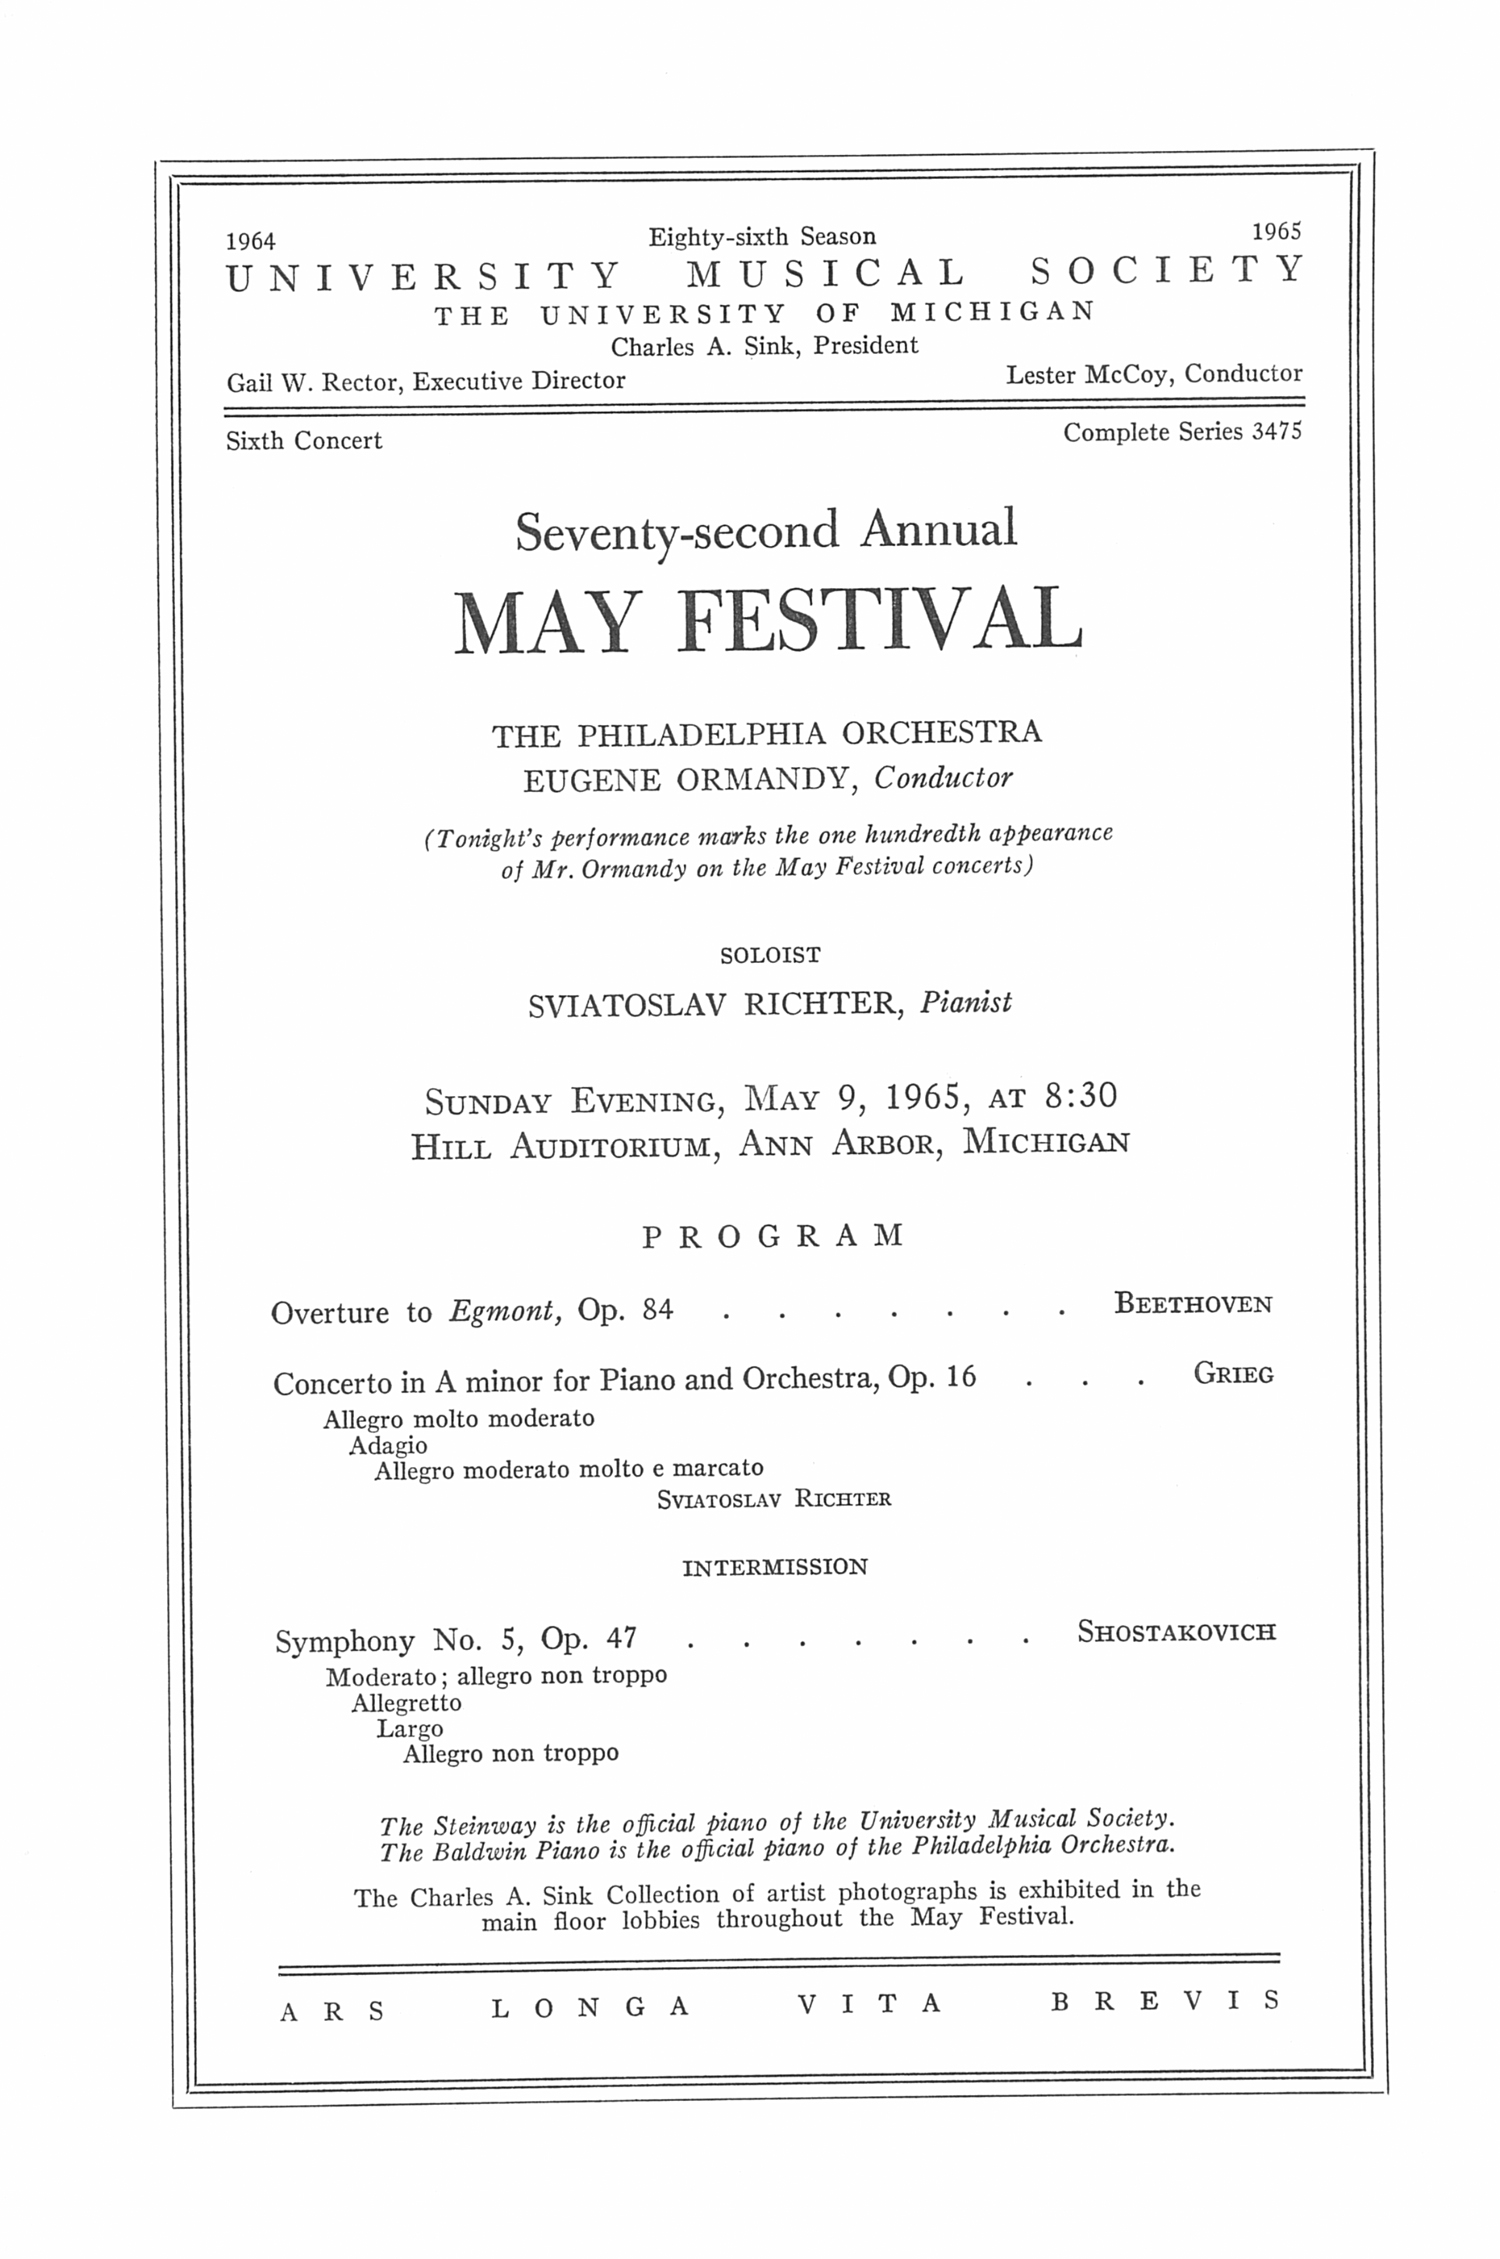 UMS Concert Program, May 9, 1965: Seventy-second Annual May Festival -- The Philadelphia Orchestra image